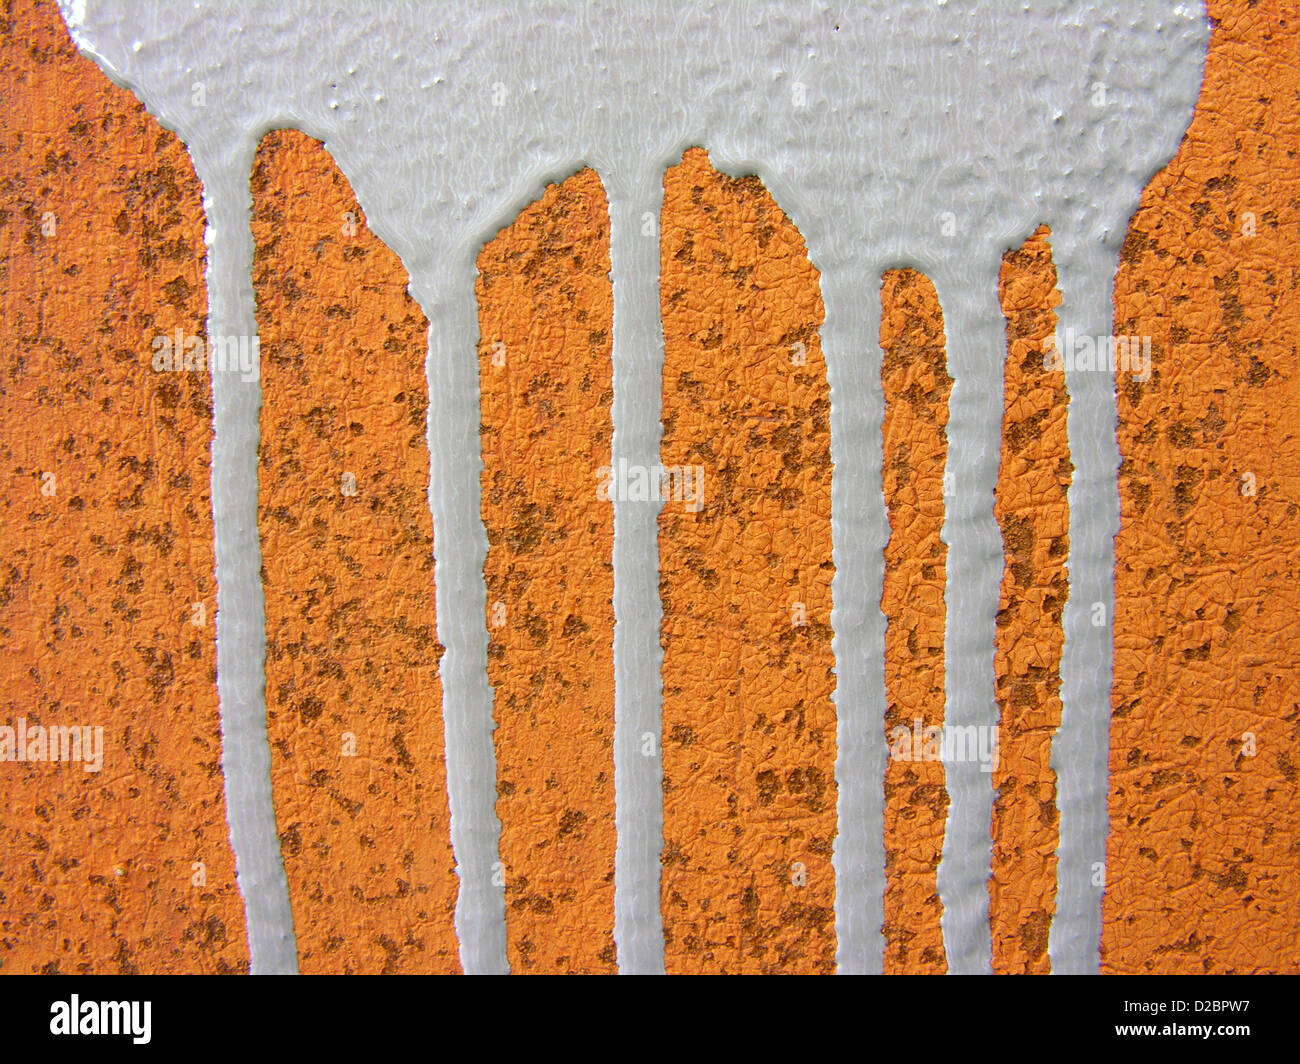 Old rusty metal surface with paint leaks - Stock Image